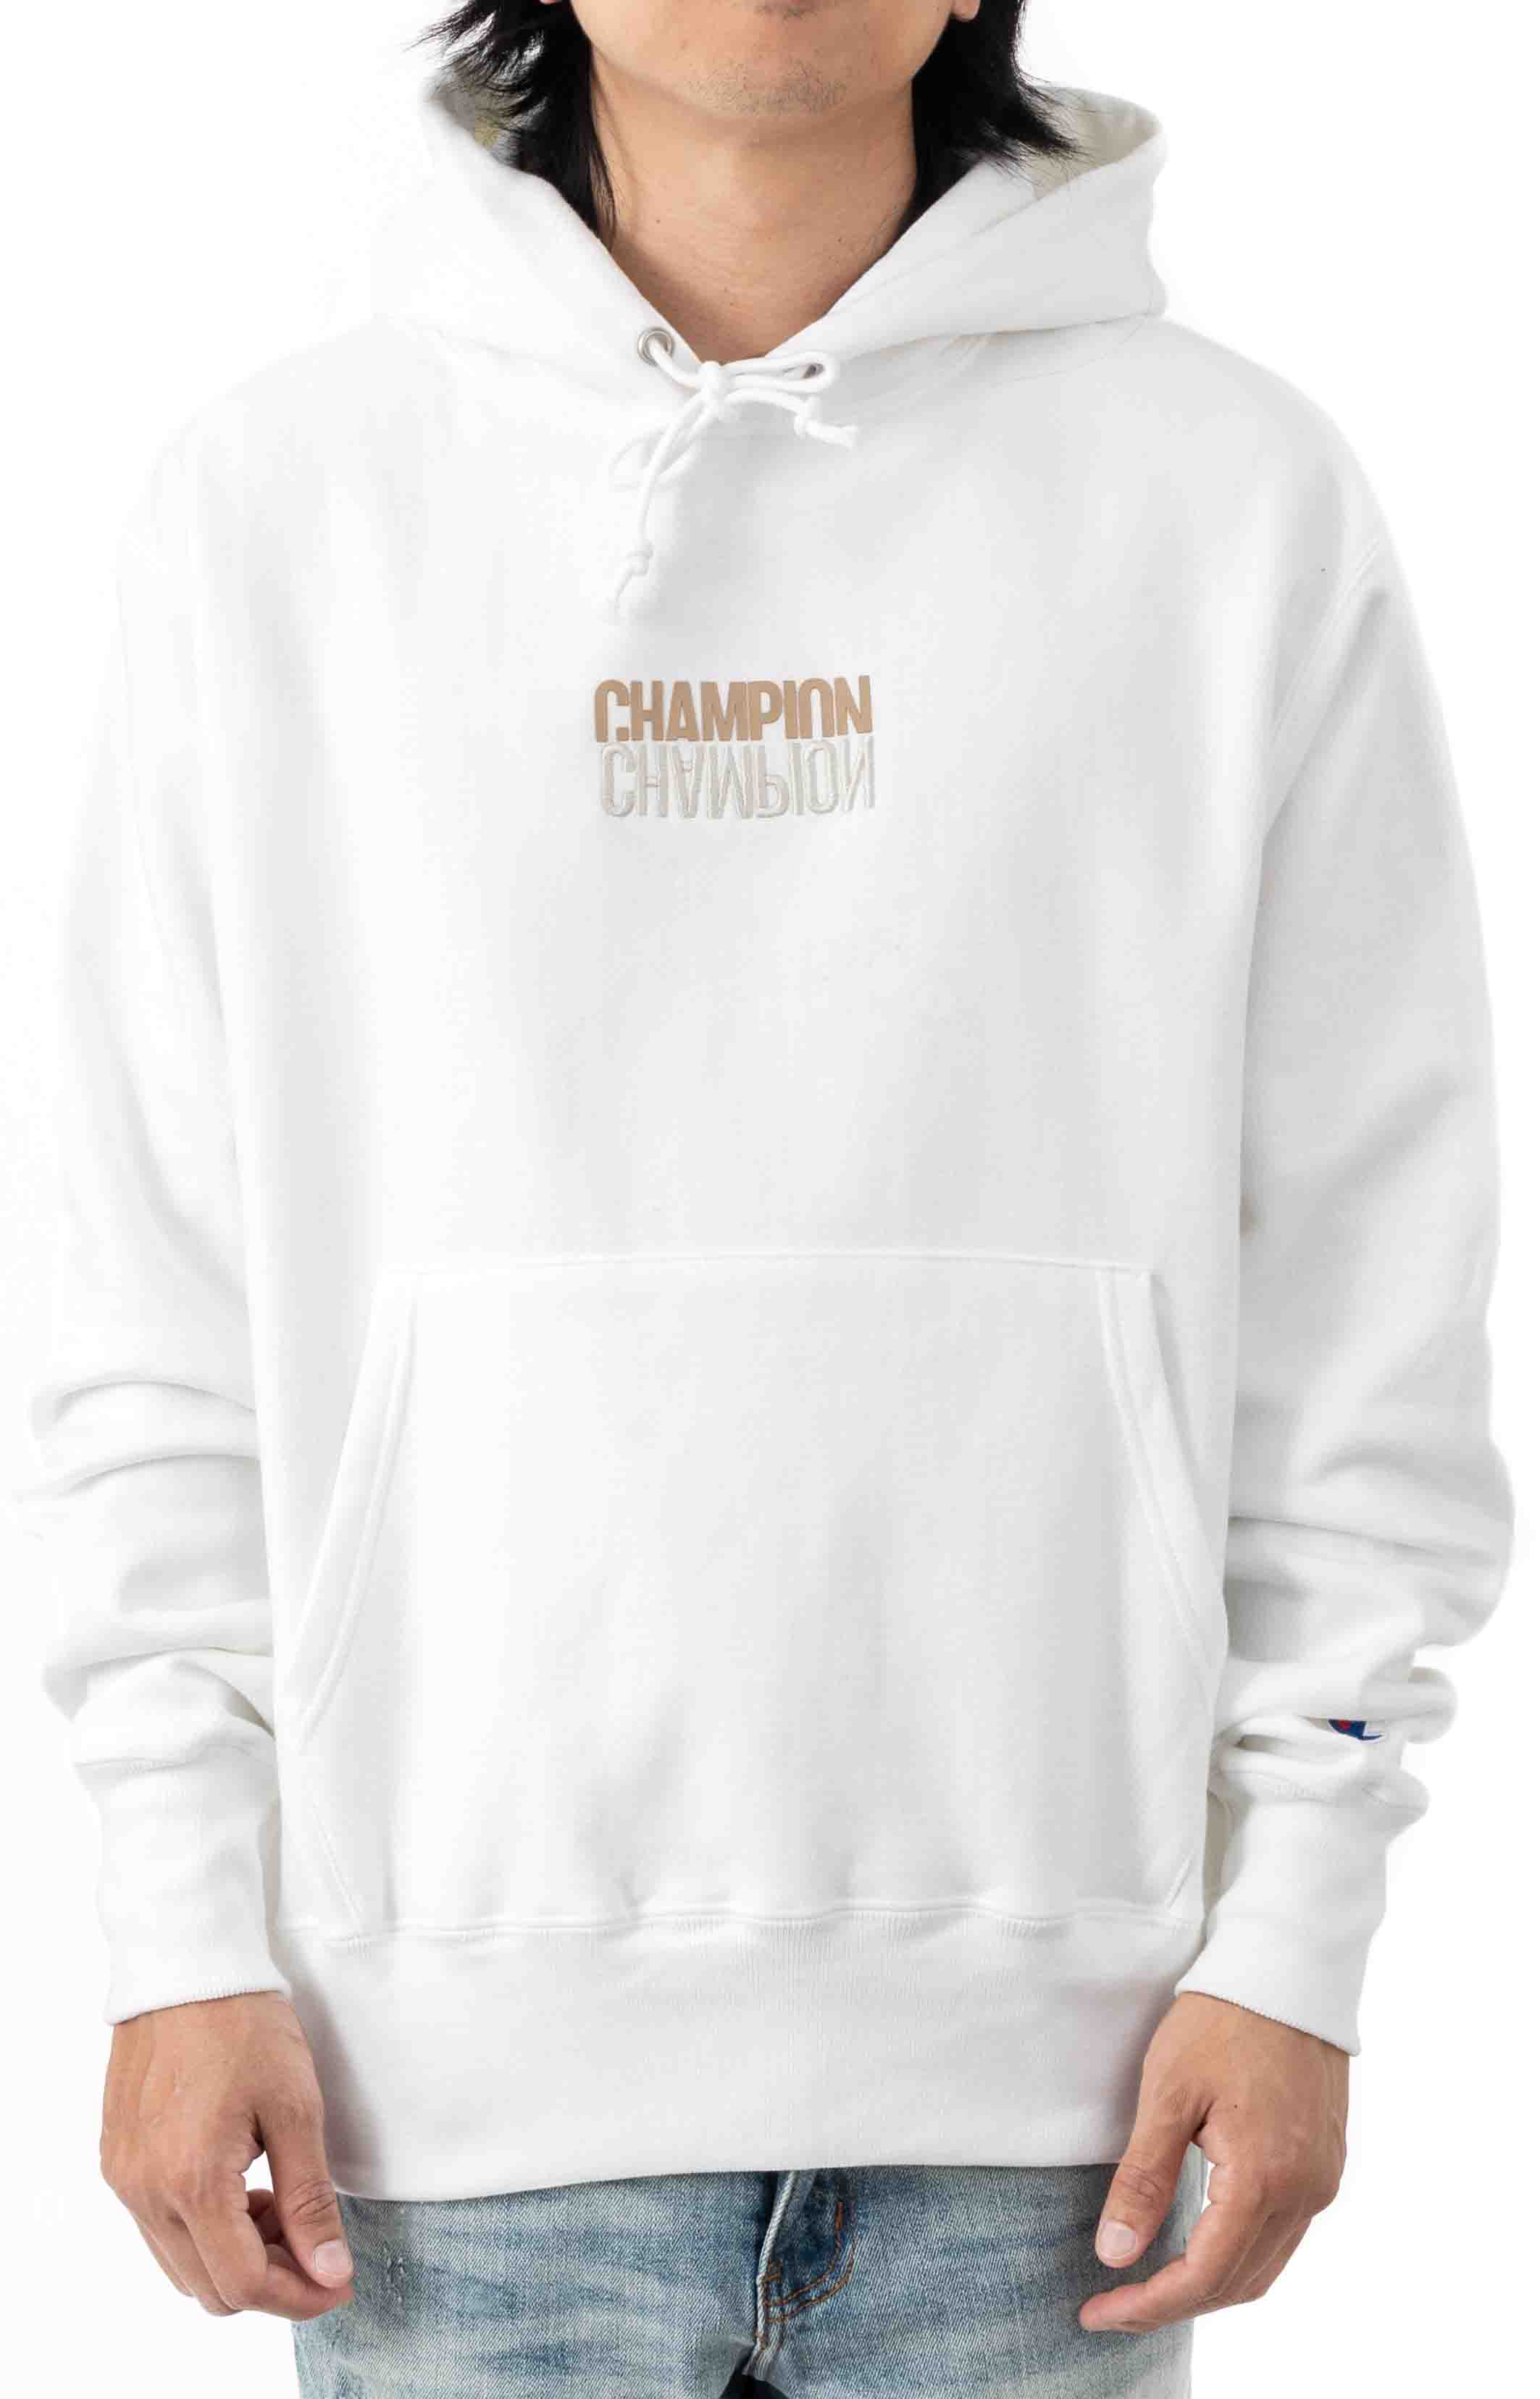 Reflective Logo Pullover Hoodie - White